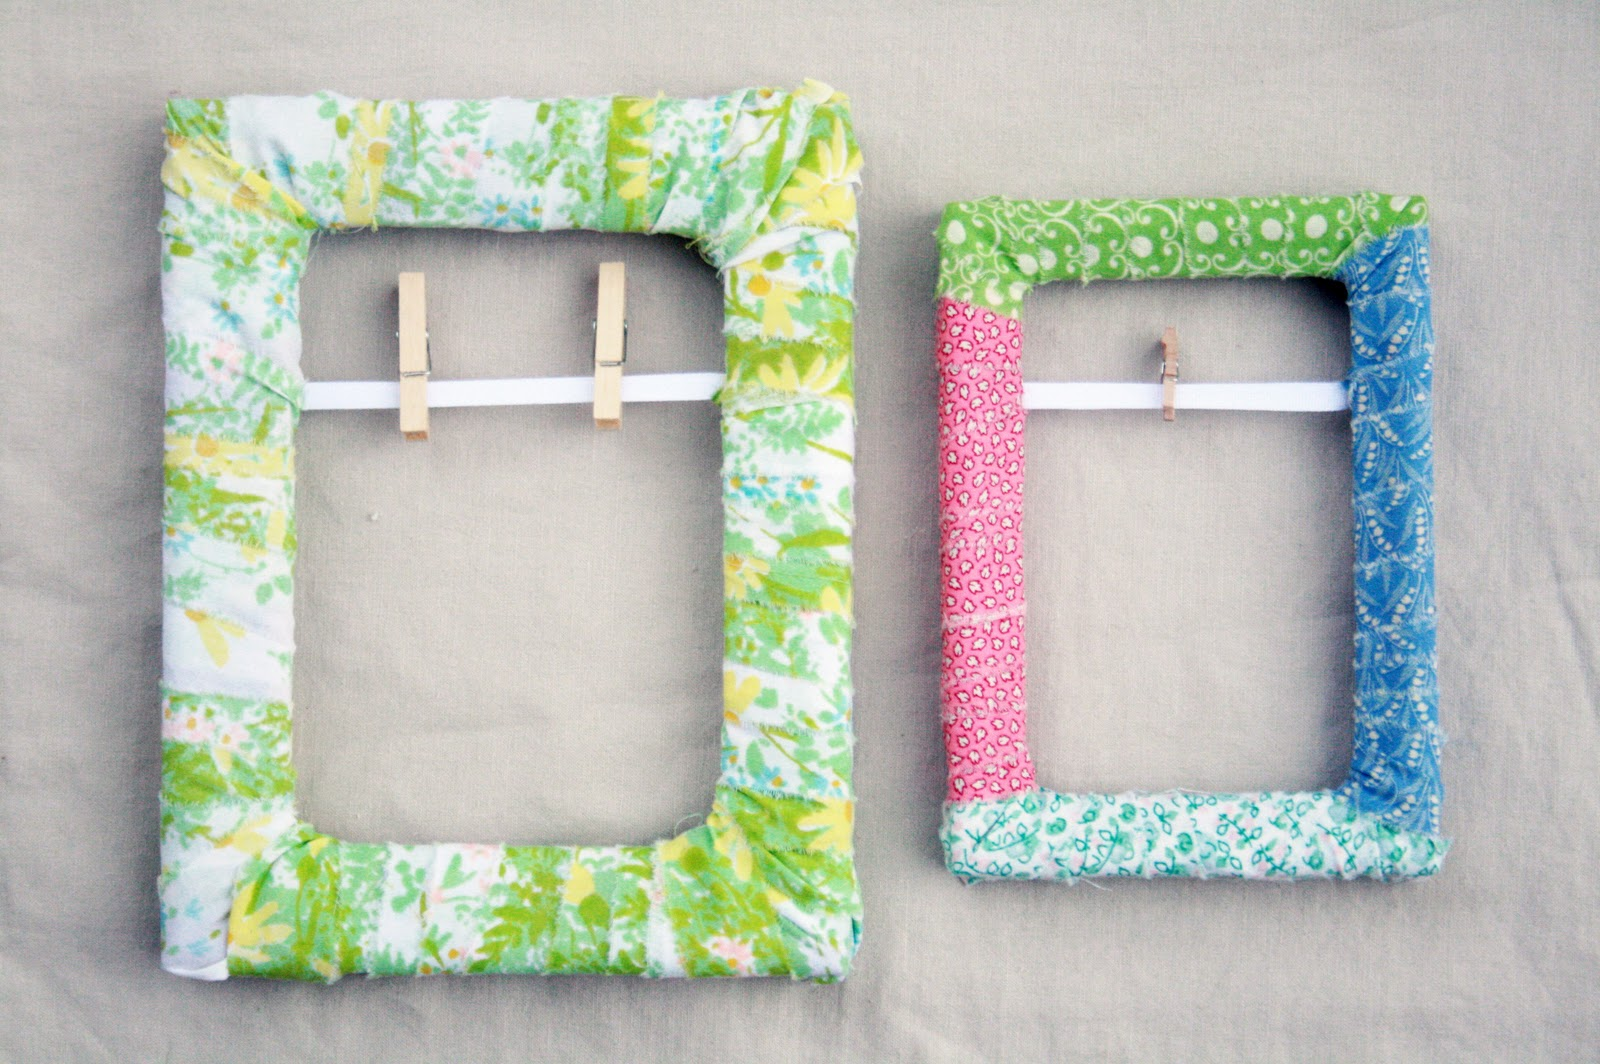 Glasses Frame Repair Diy : How To Make A Picture Frame Pictures to pin on Pinterest